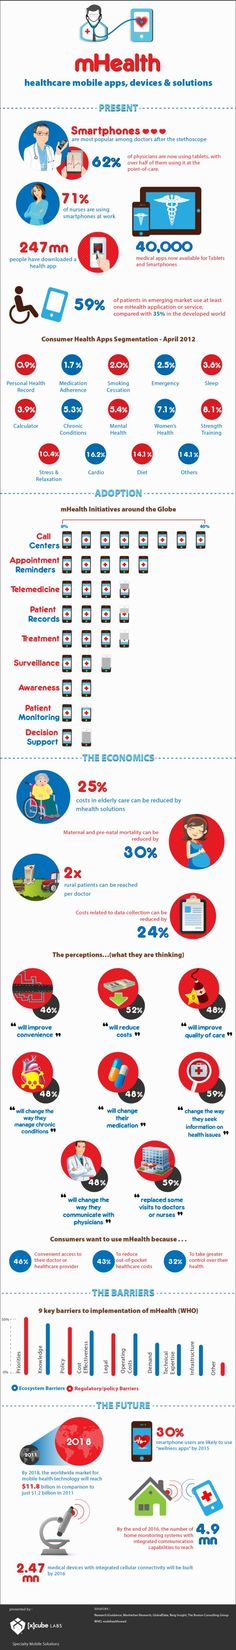 Mobility in healthcare #mhealth #hcsmeu #hcsm #infographic